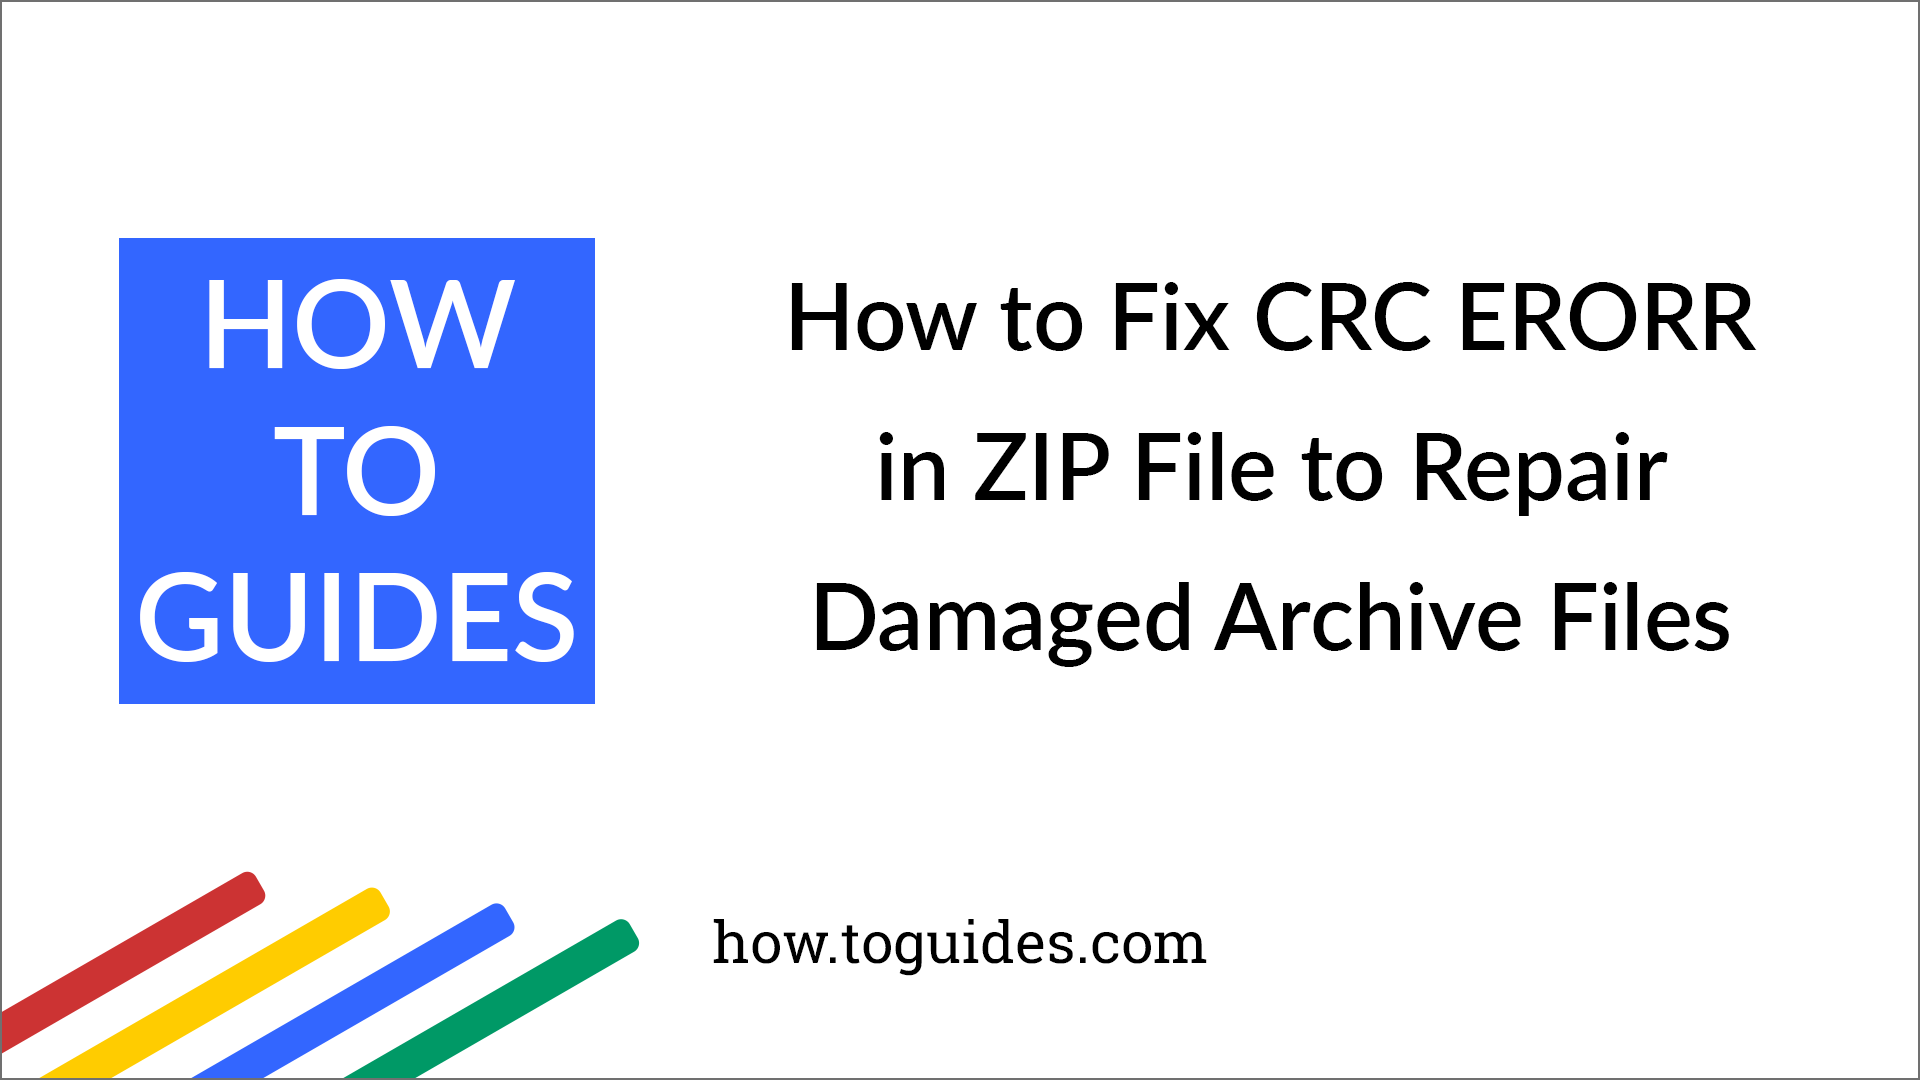 How to Fix CRC Error in Zip Files and Repair and Restore Damaged